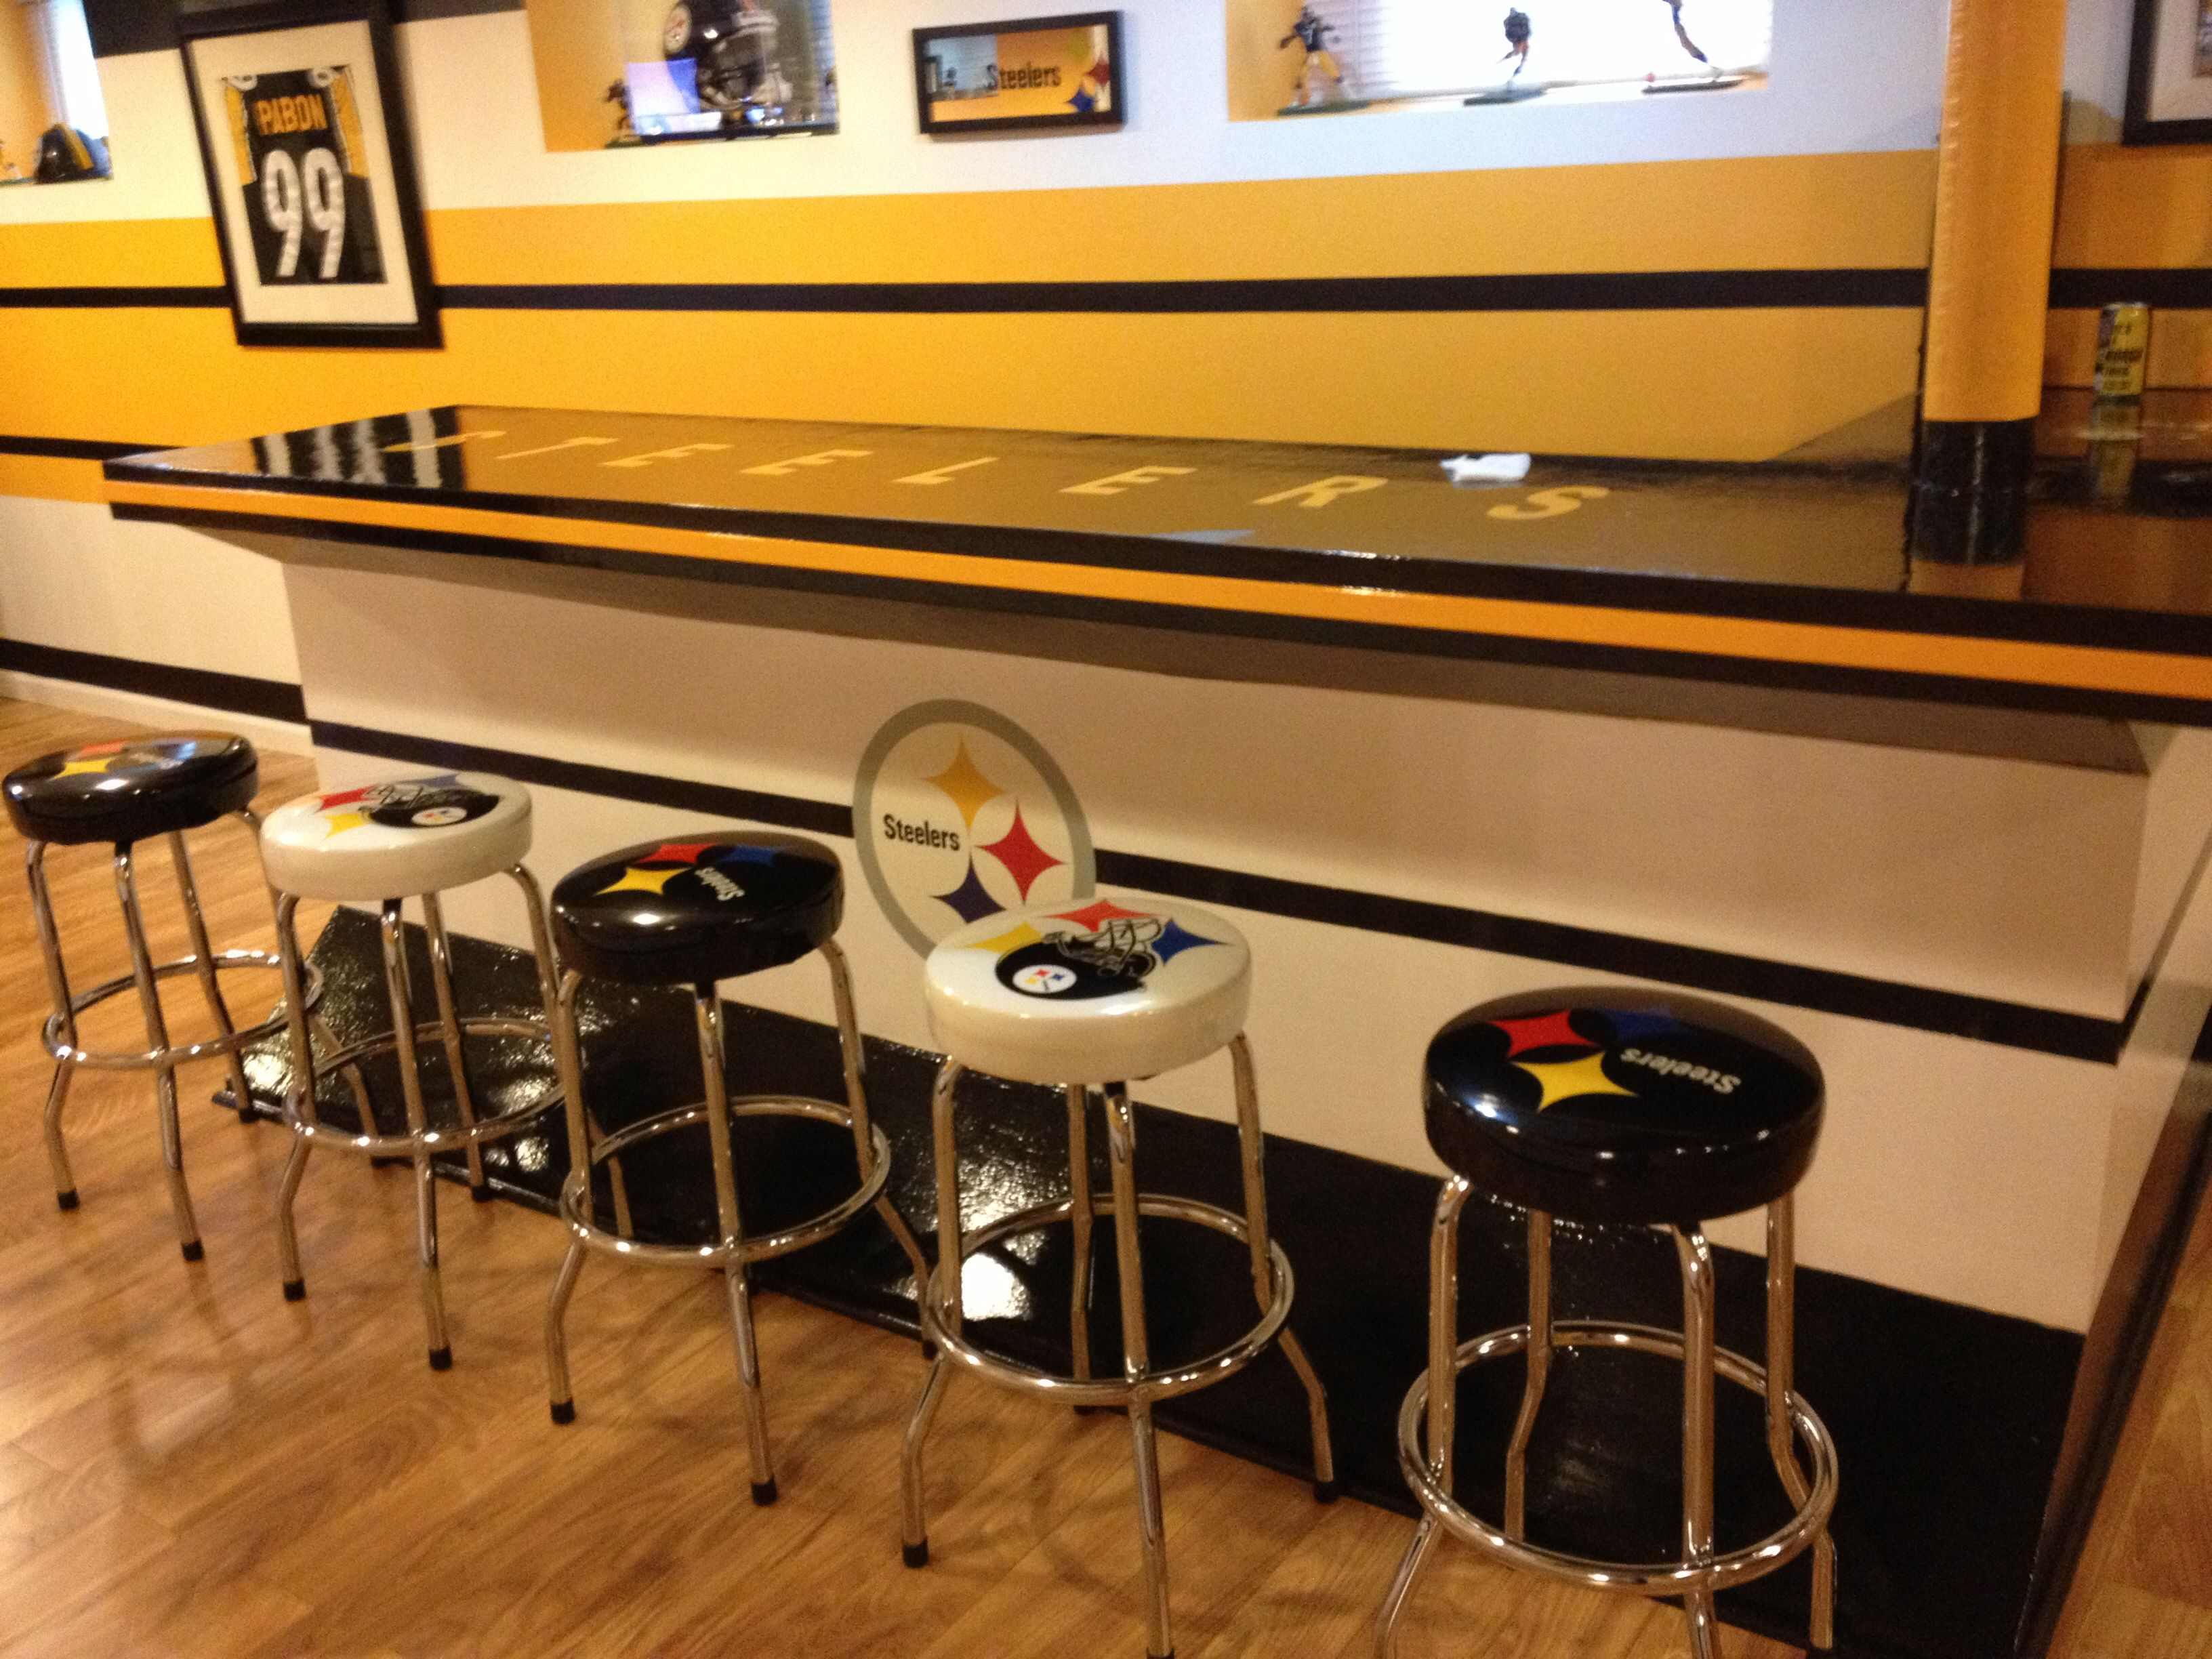 Pittsburgh Steelers Man Cave Decor : Our steelers man cave